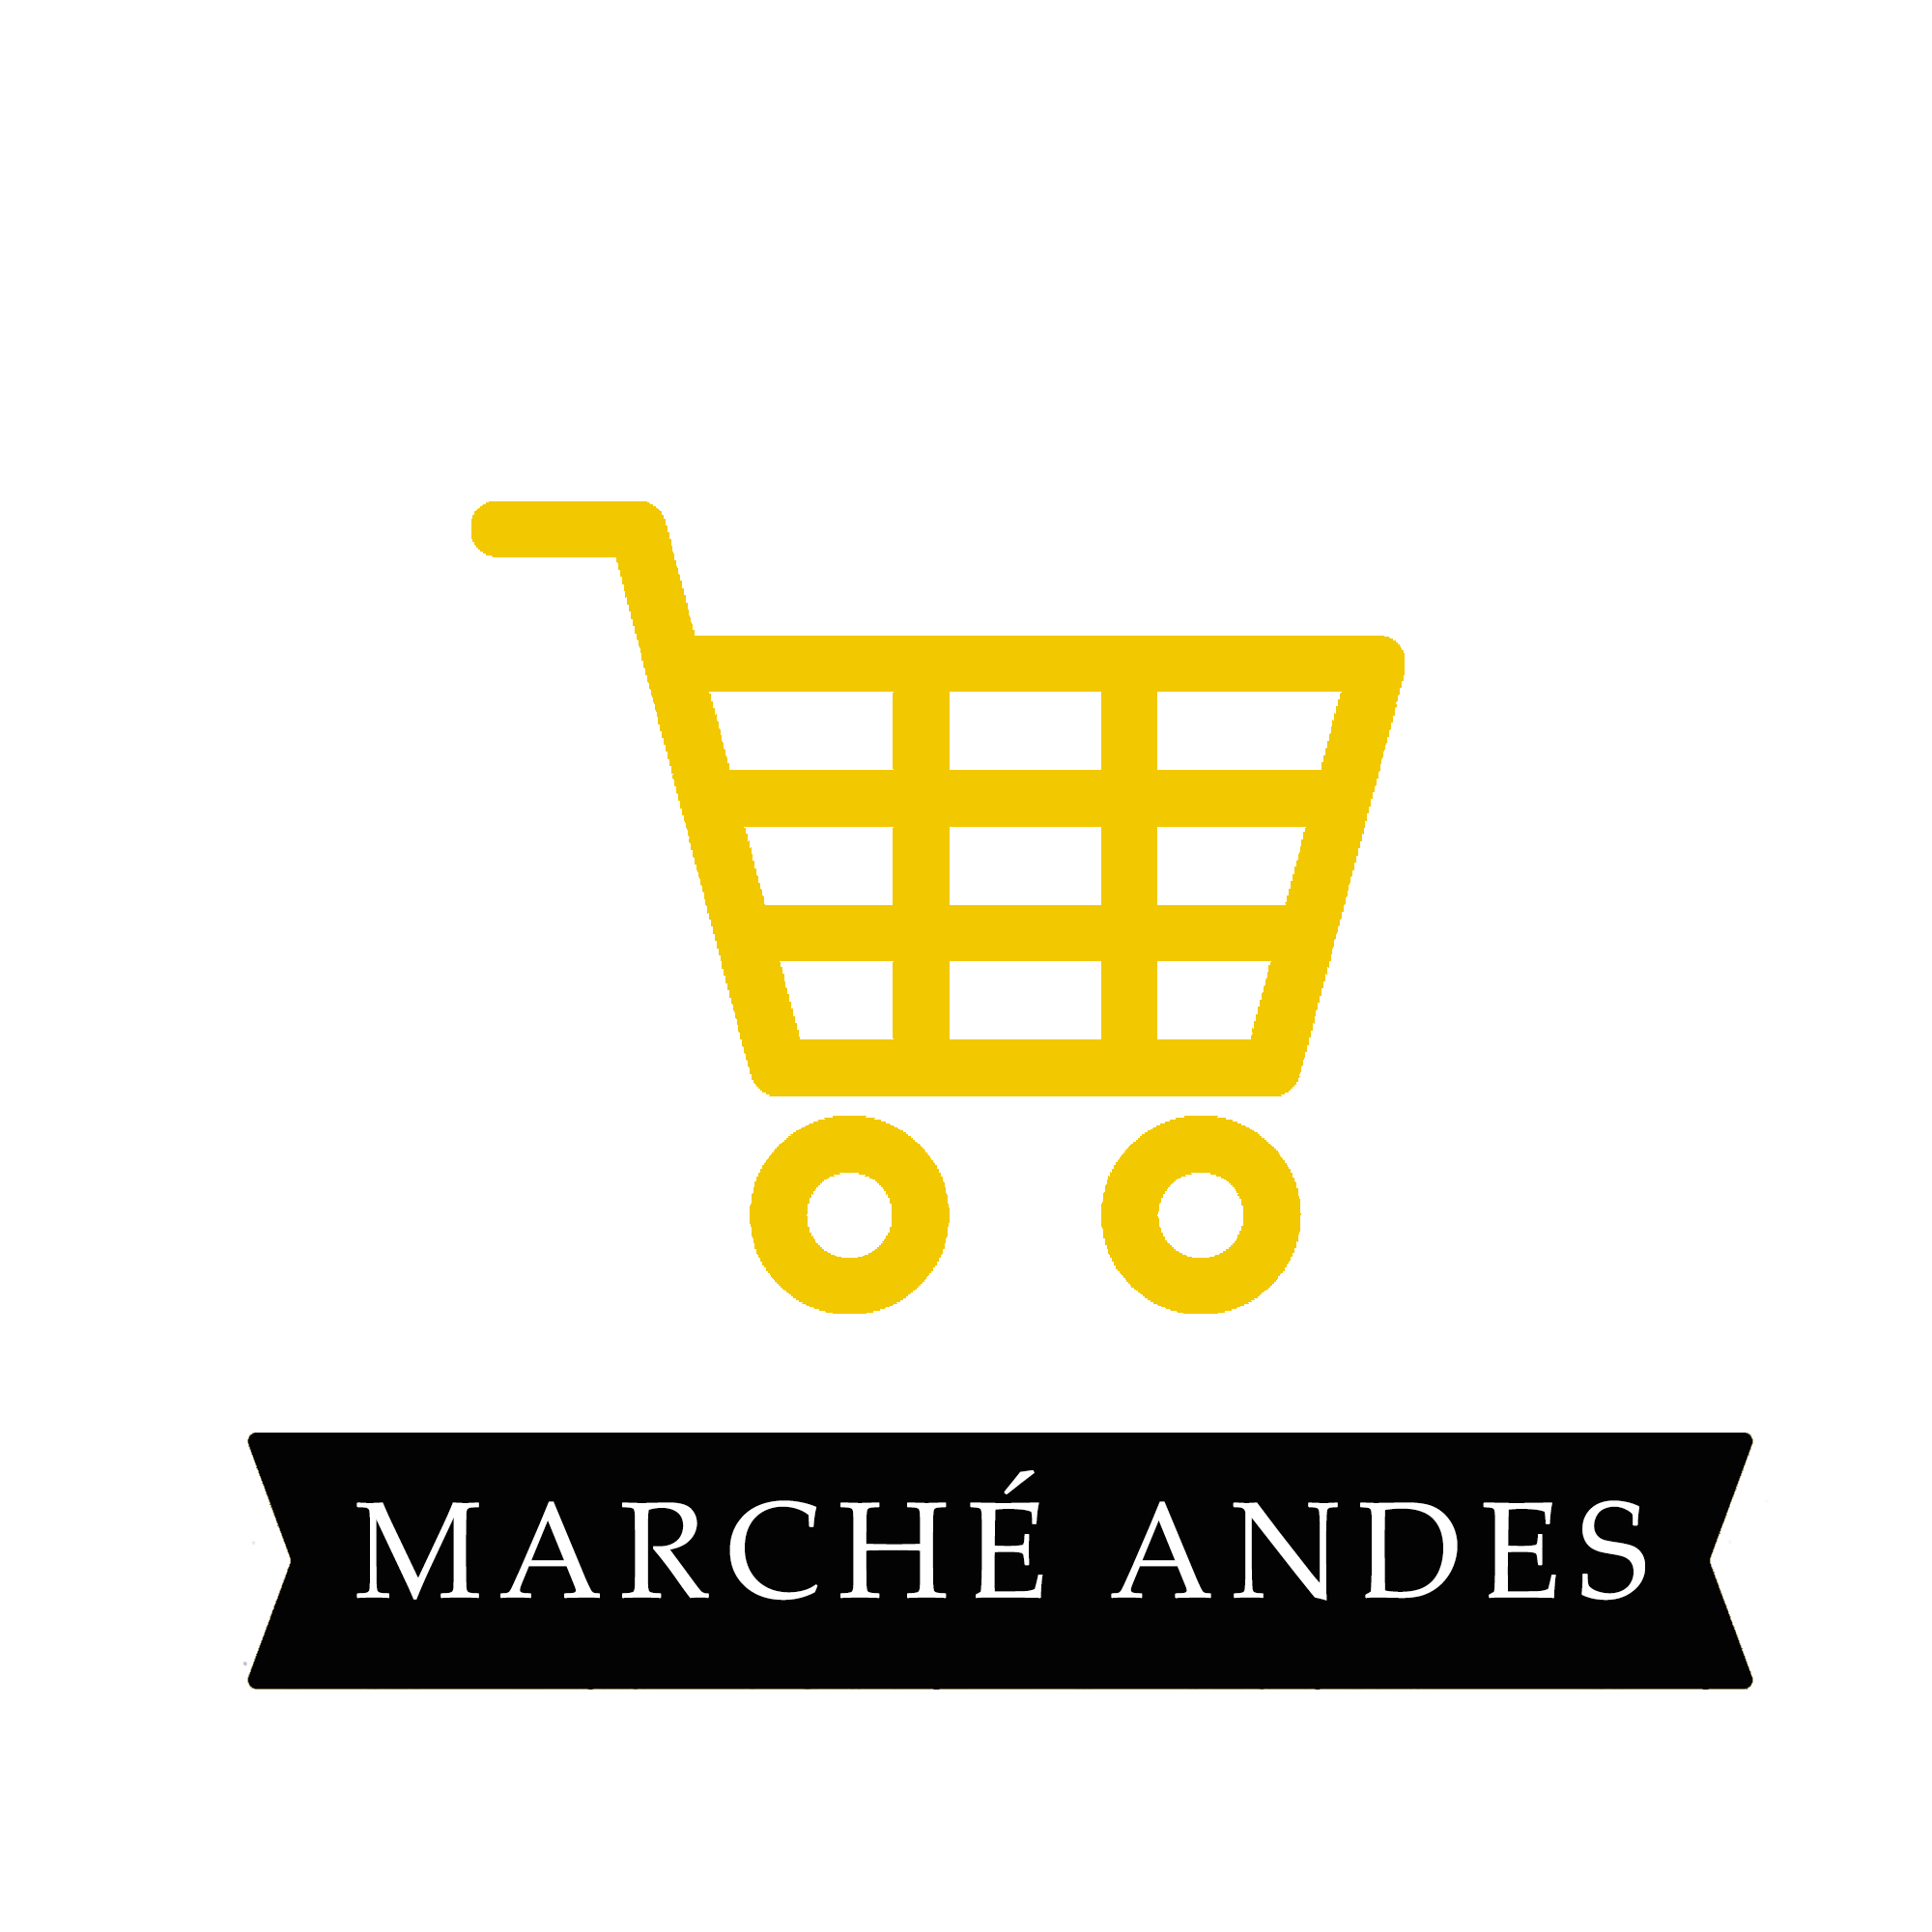 Grocery Marche Andes